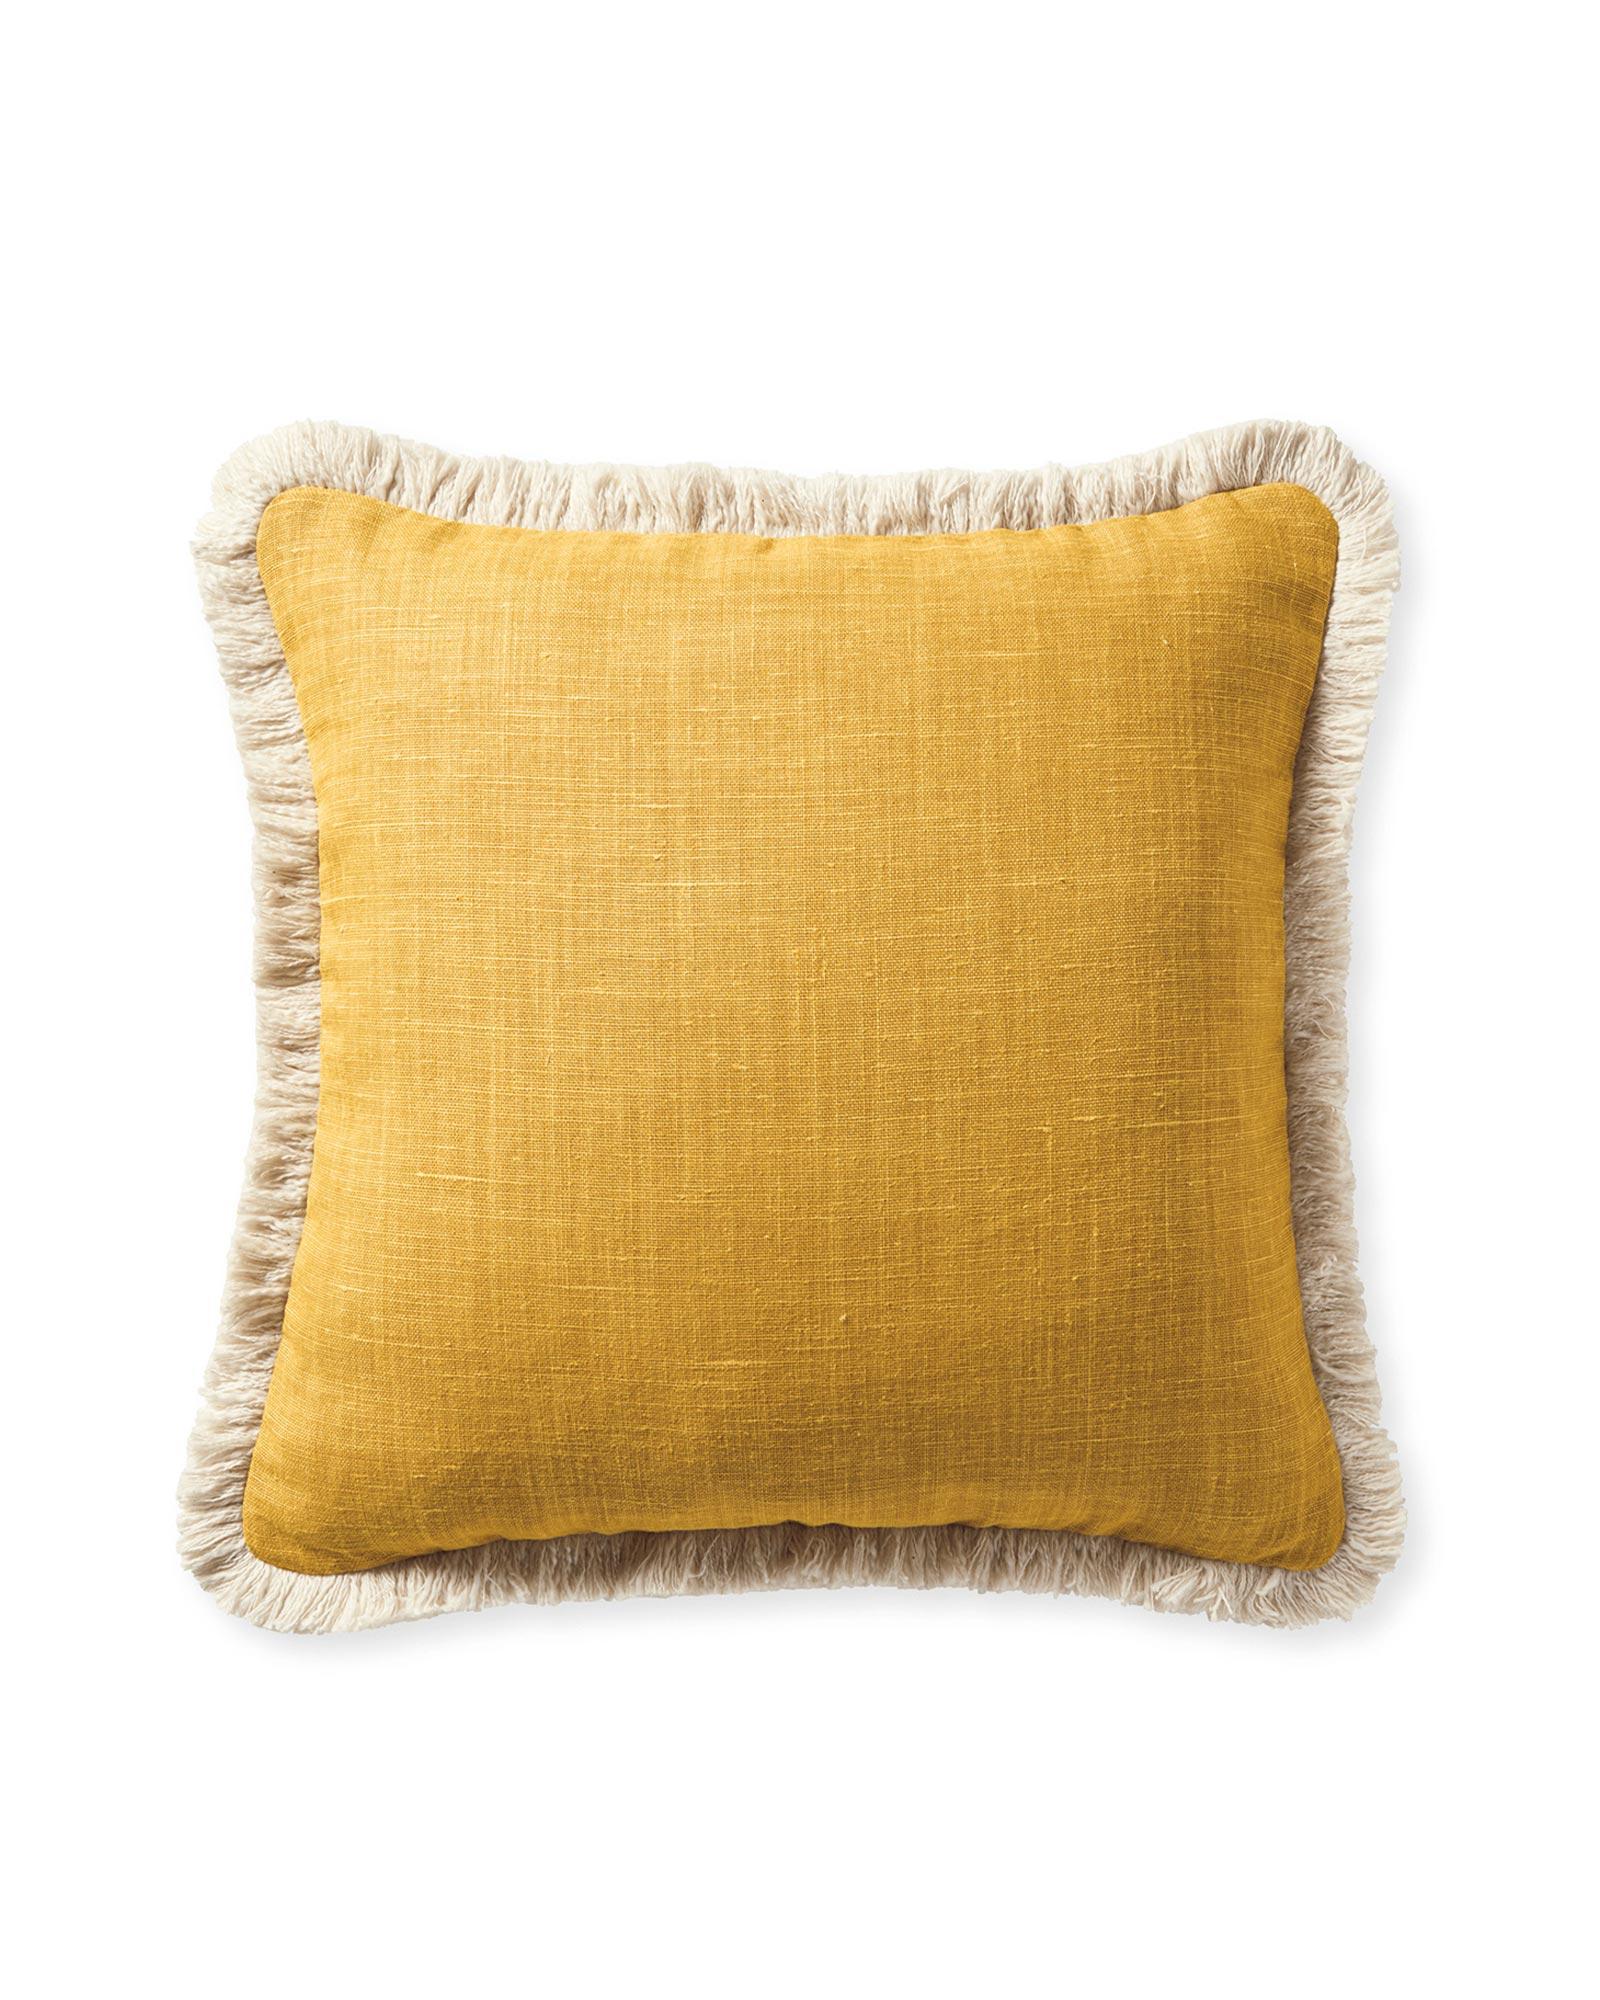 Bowden Pillow Cover, Yarrow